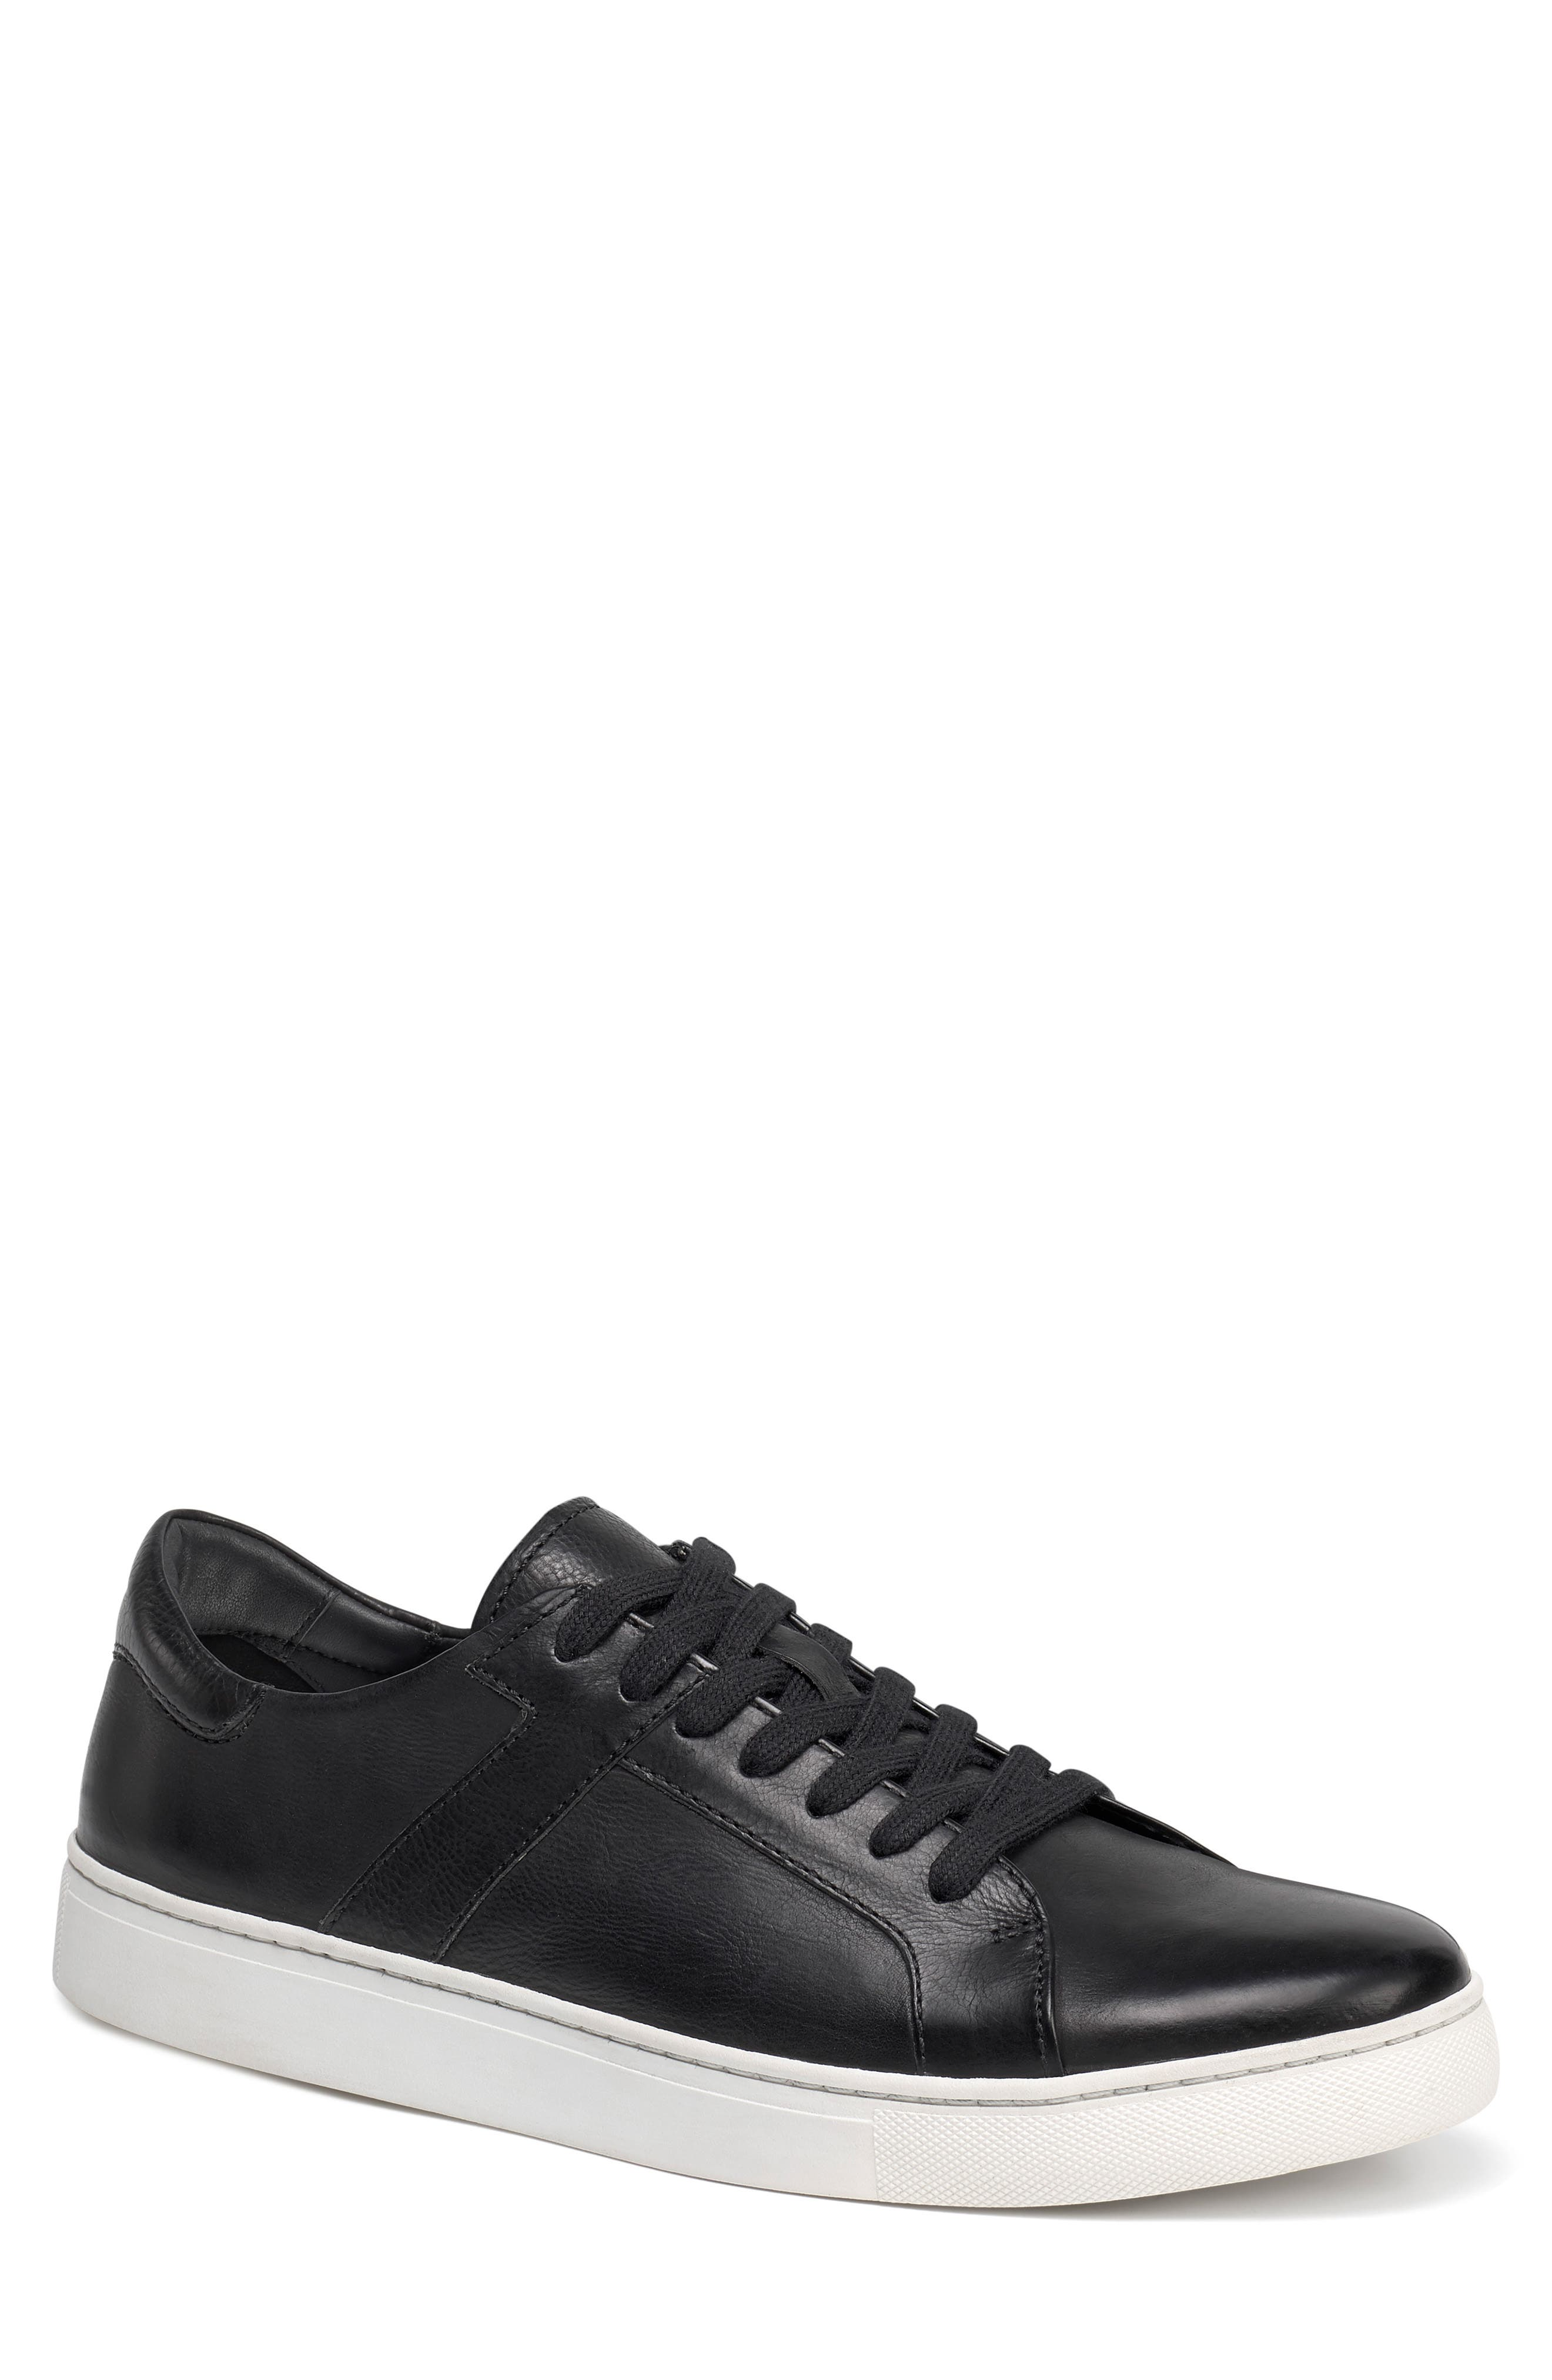 TRASK Aaron Sneaker, Main, color, BLACK LEATHER